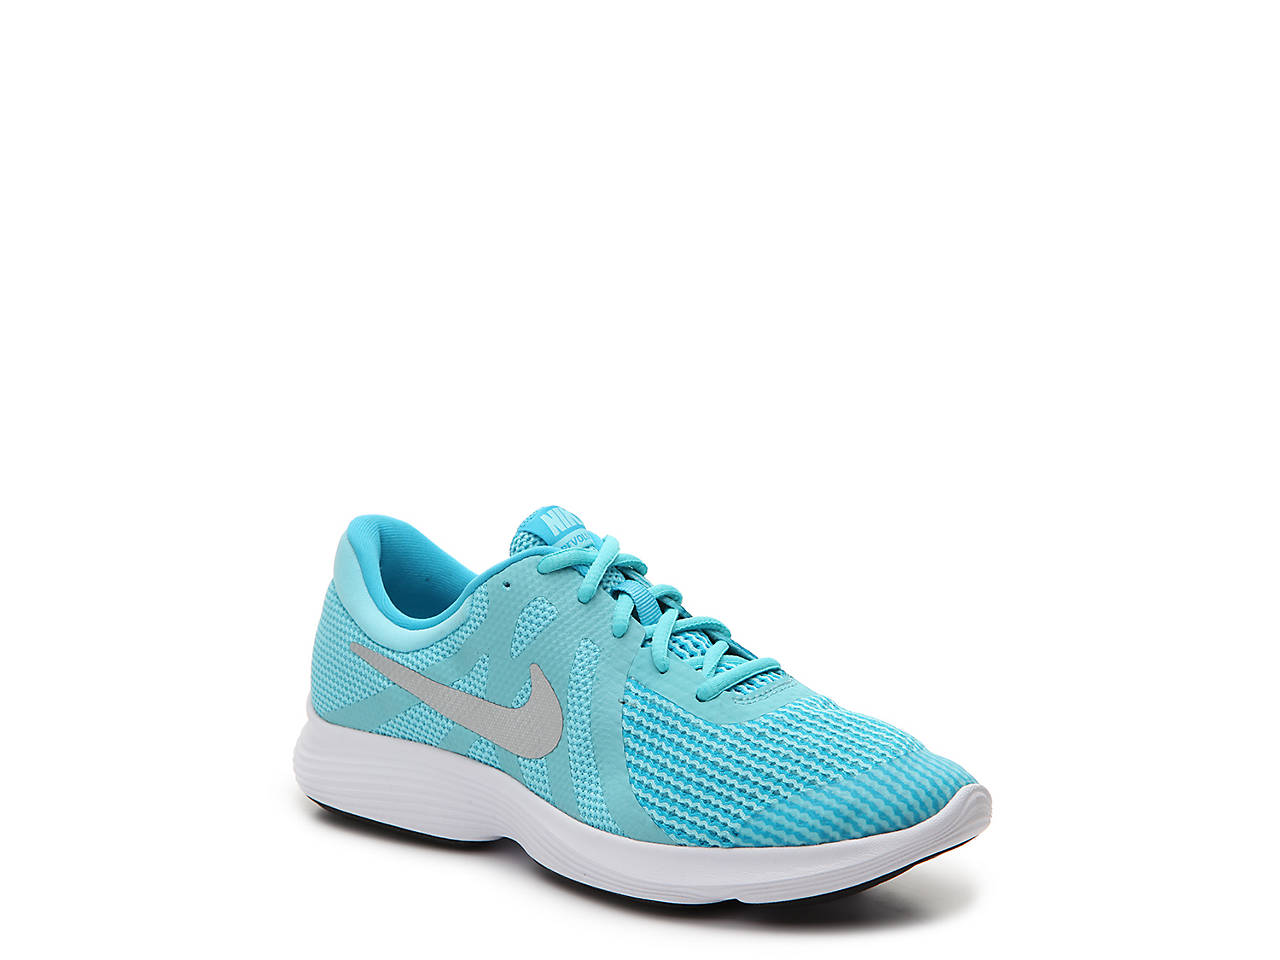 39d33a5734b Nike Revolution 4 Youth Running Shoe Kids Shoes